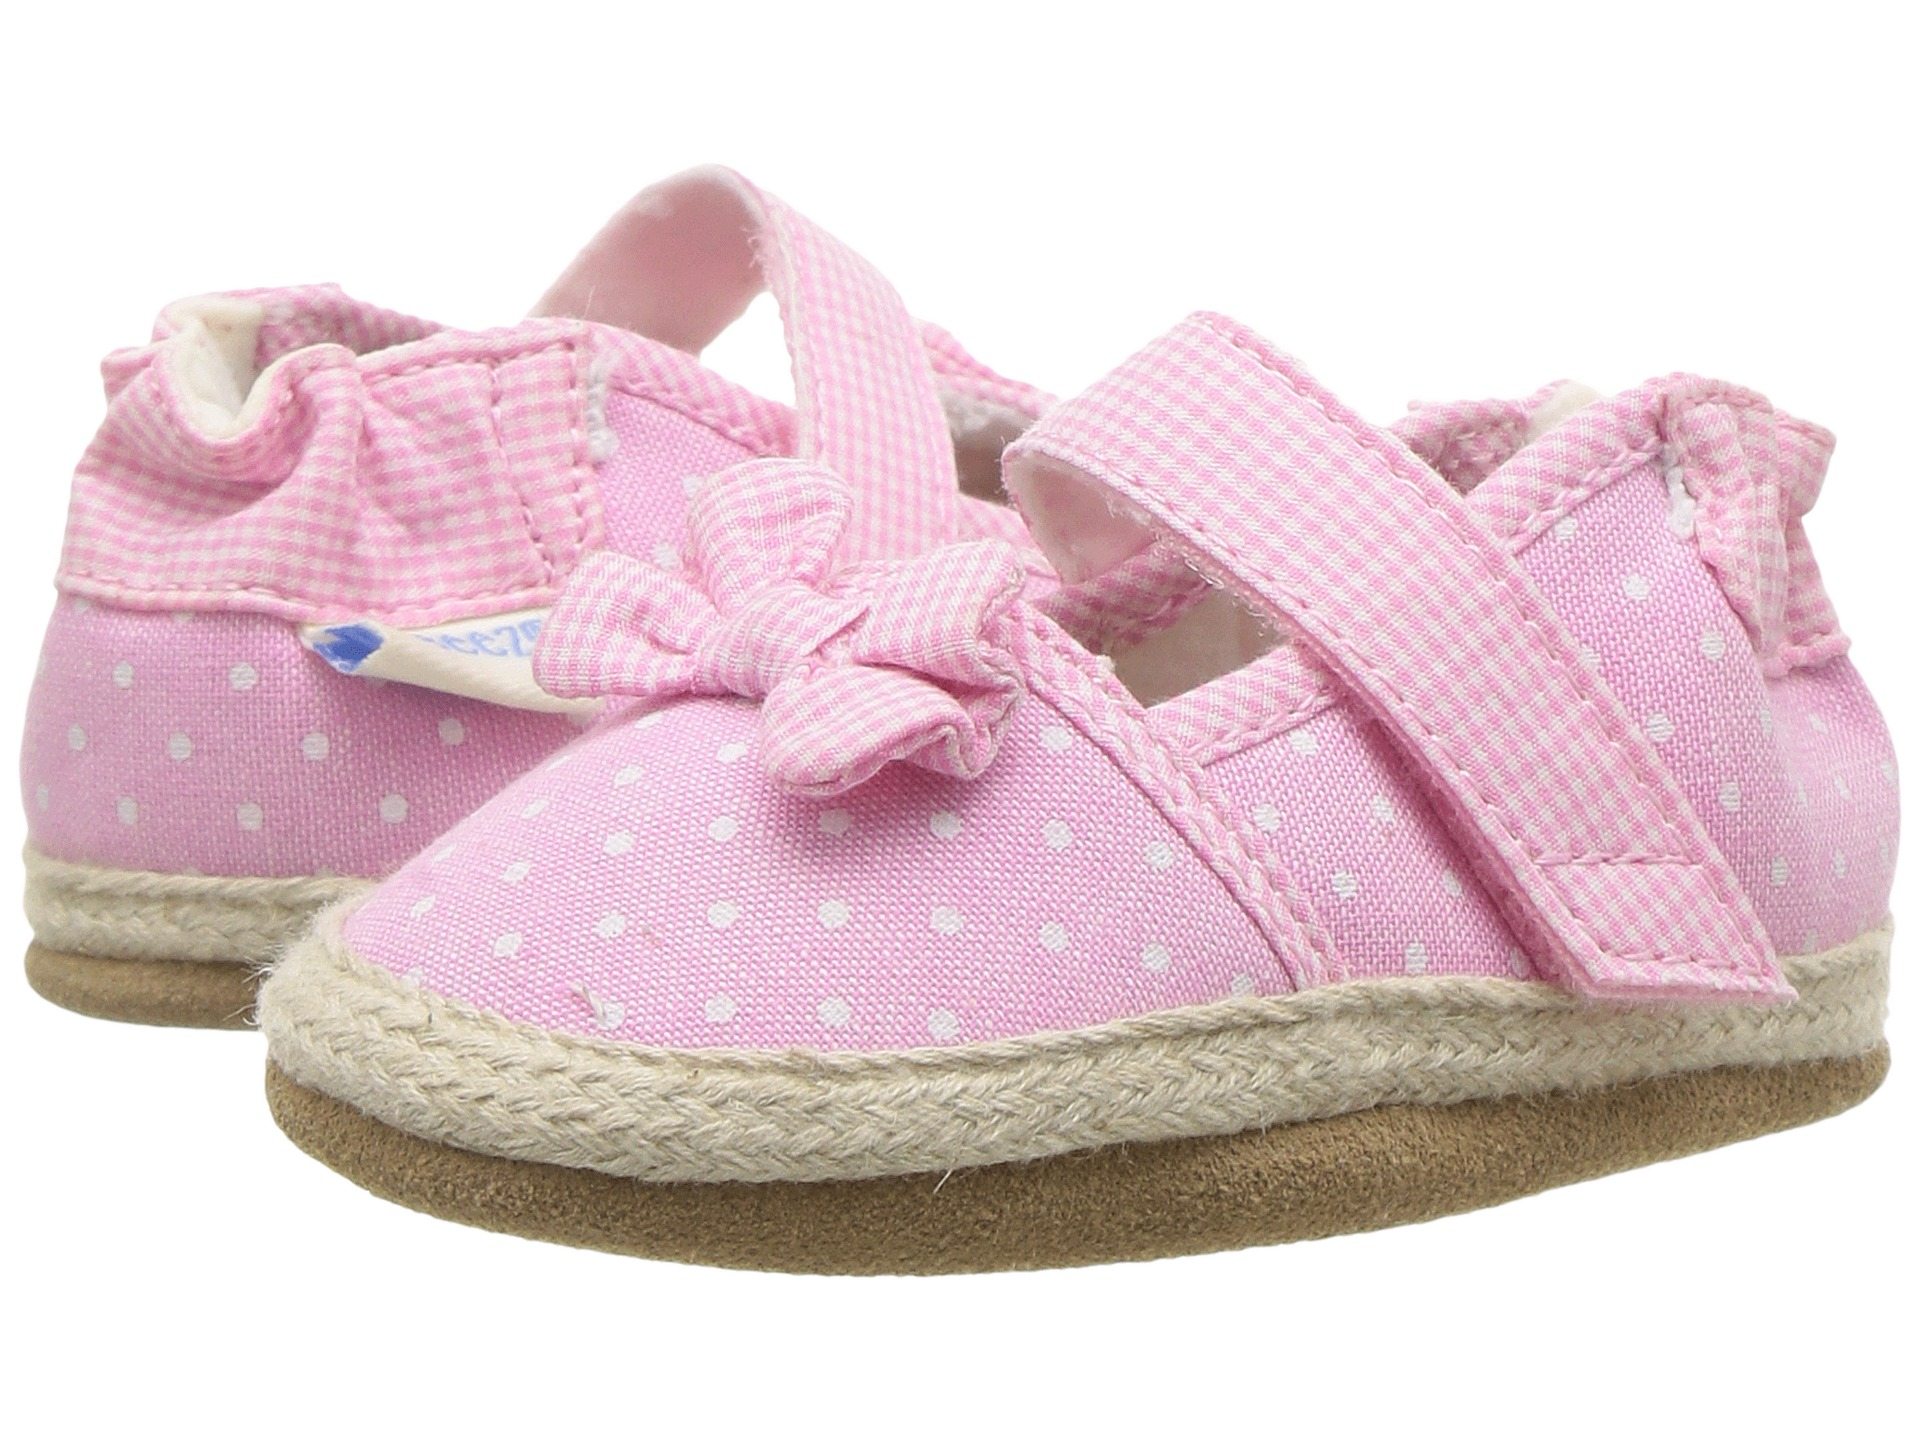 Where To Find Robeez Shoes